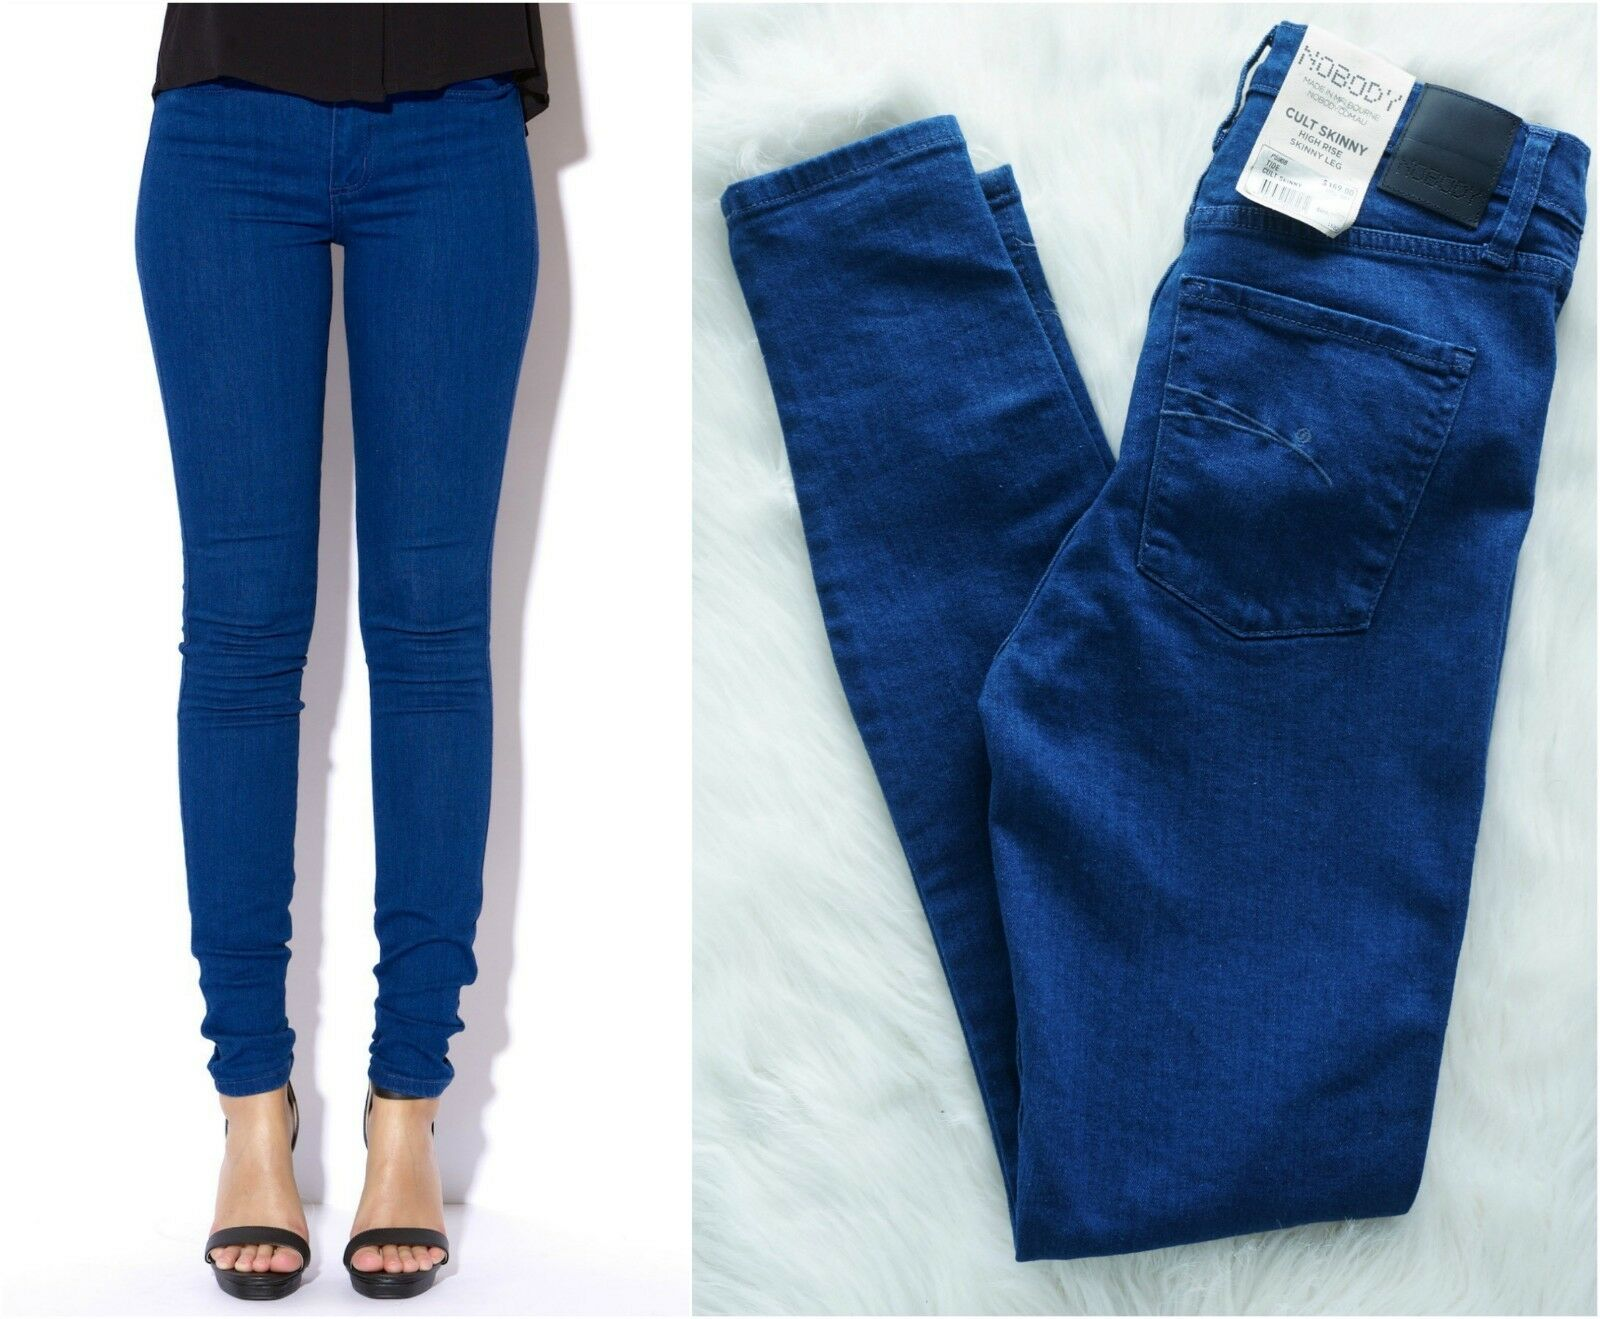 NOBODY Cult NWT High-Rise Skinny Tide Women's Jeans Size 24   AU 6 RRP